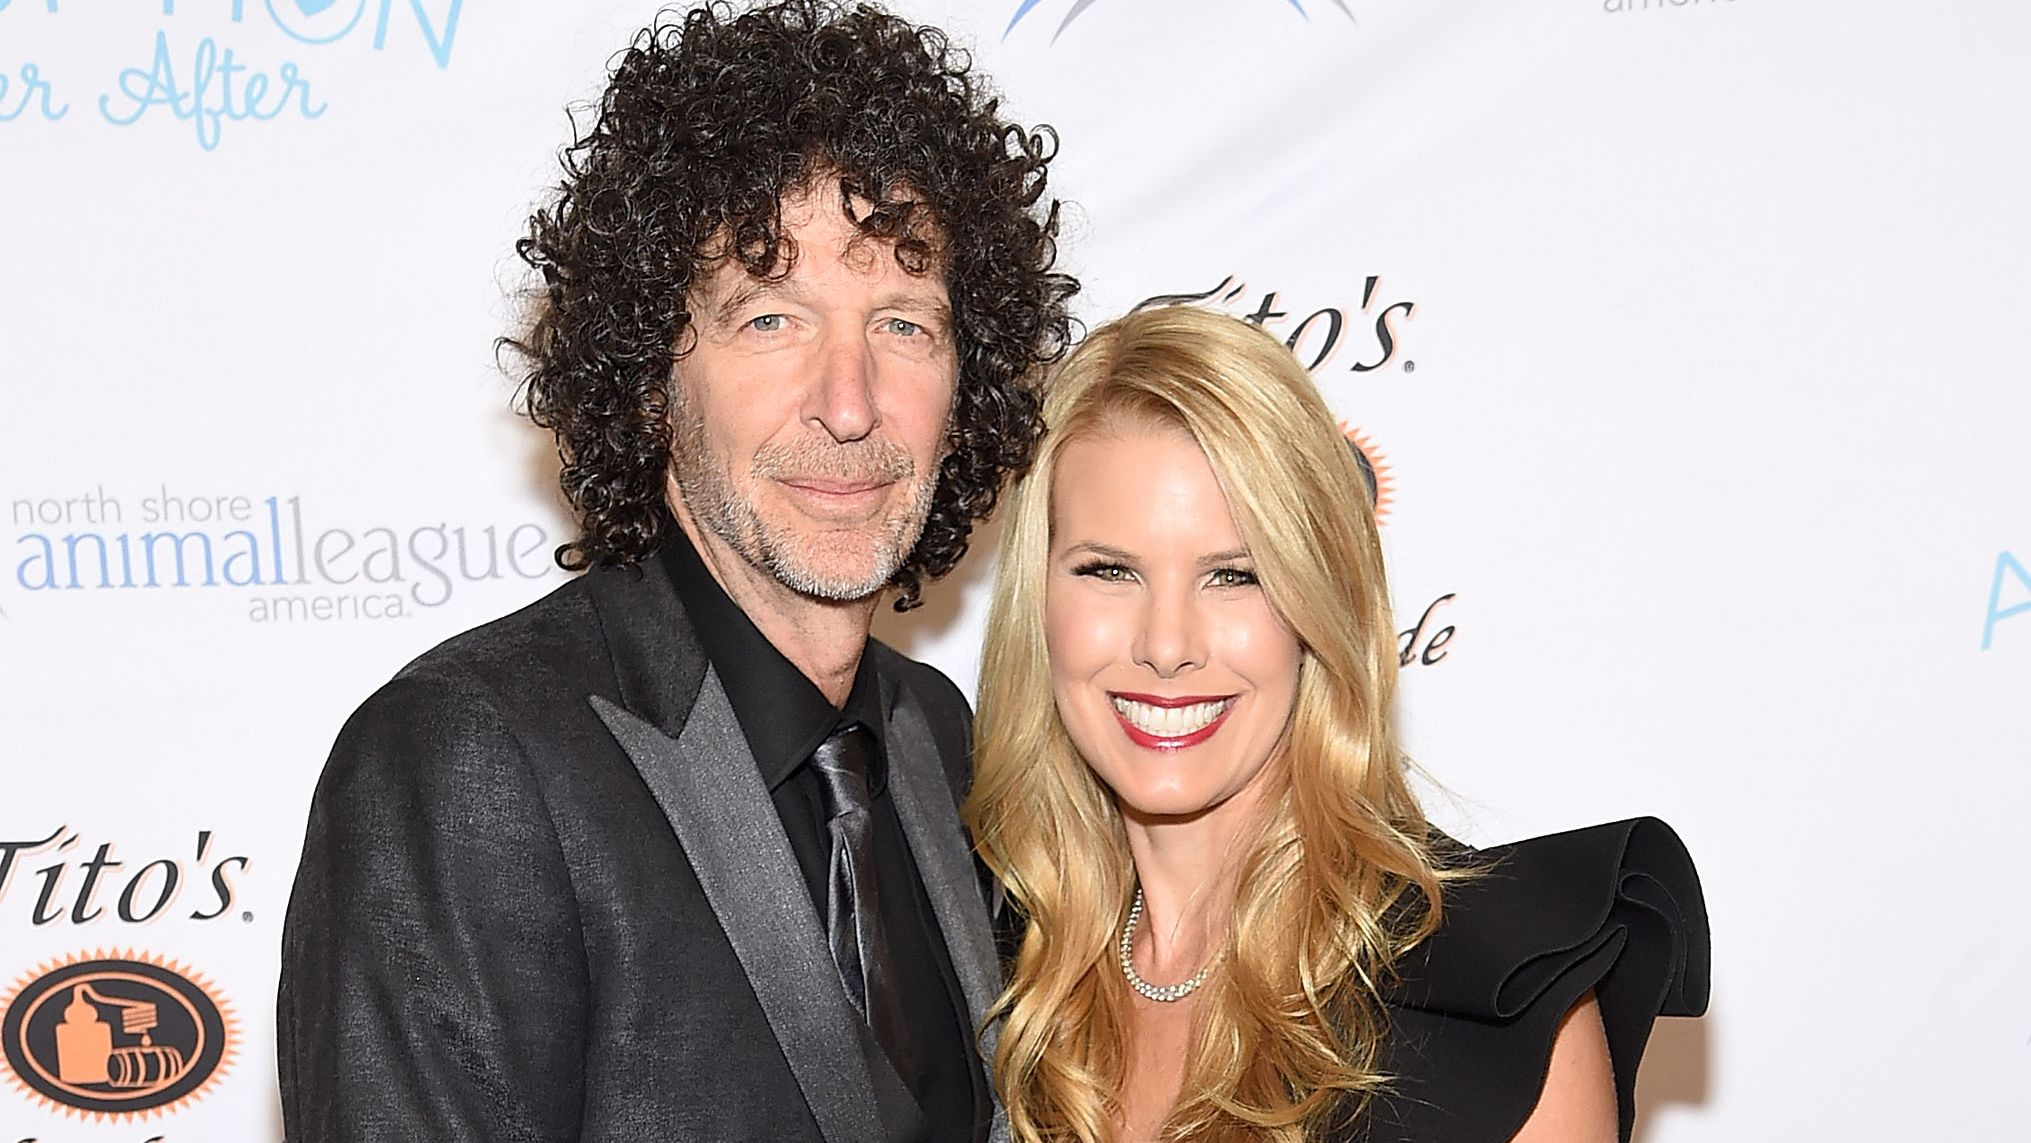 Howard Stern Gets Loving Message From Beth On Their Anniversary